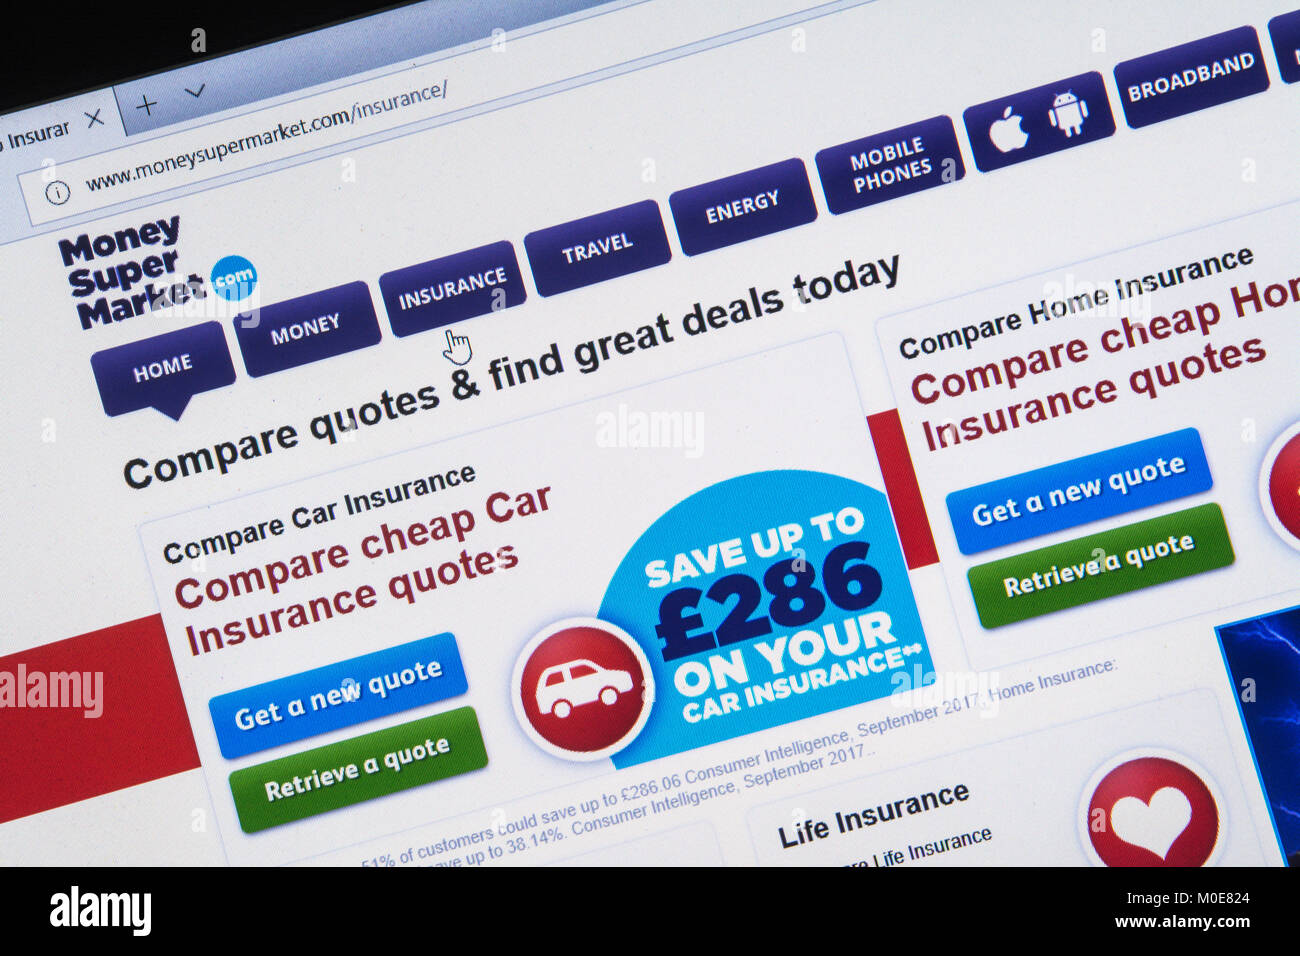 Computer screenshot of price comparison website money supermarket.com - information about cheap car insurance quotes - Stock Image